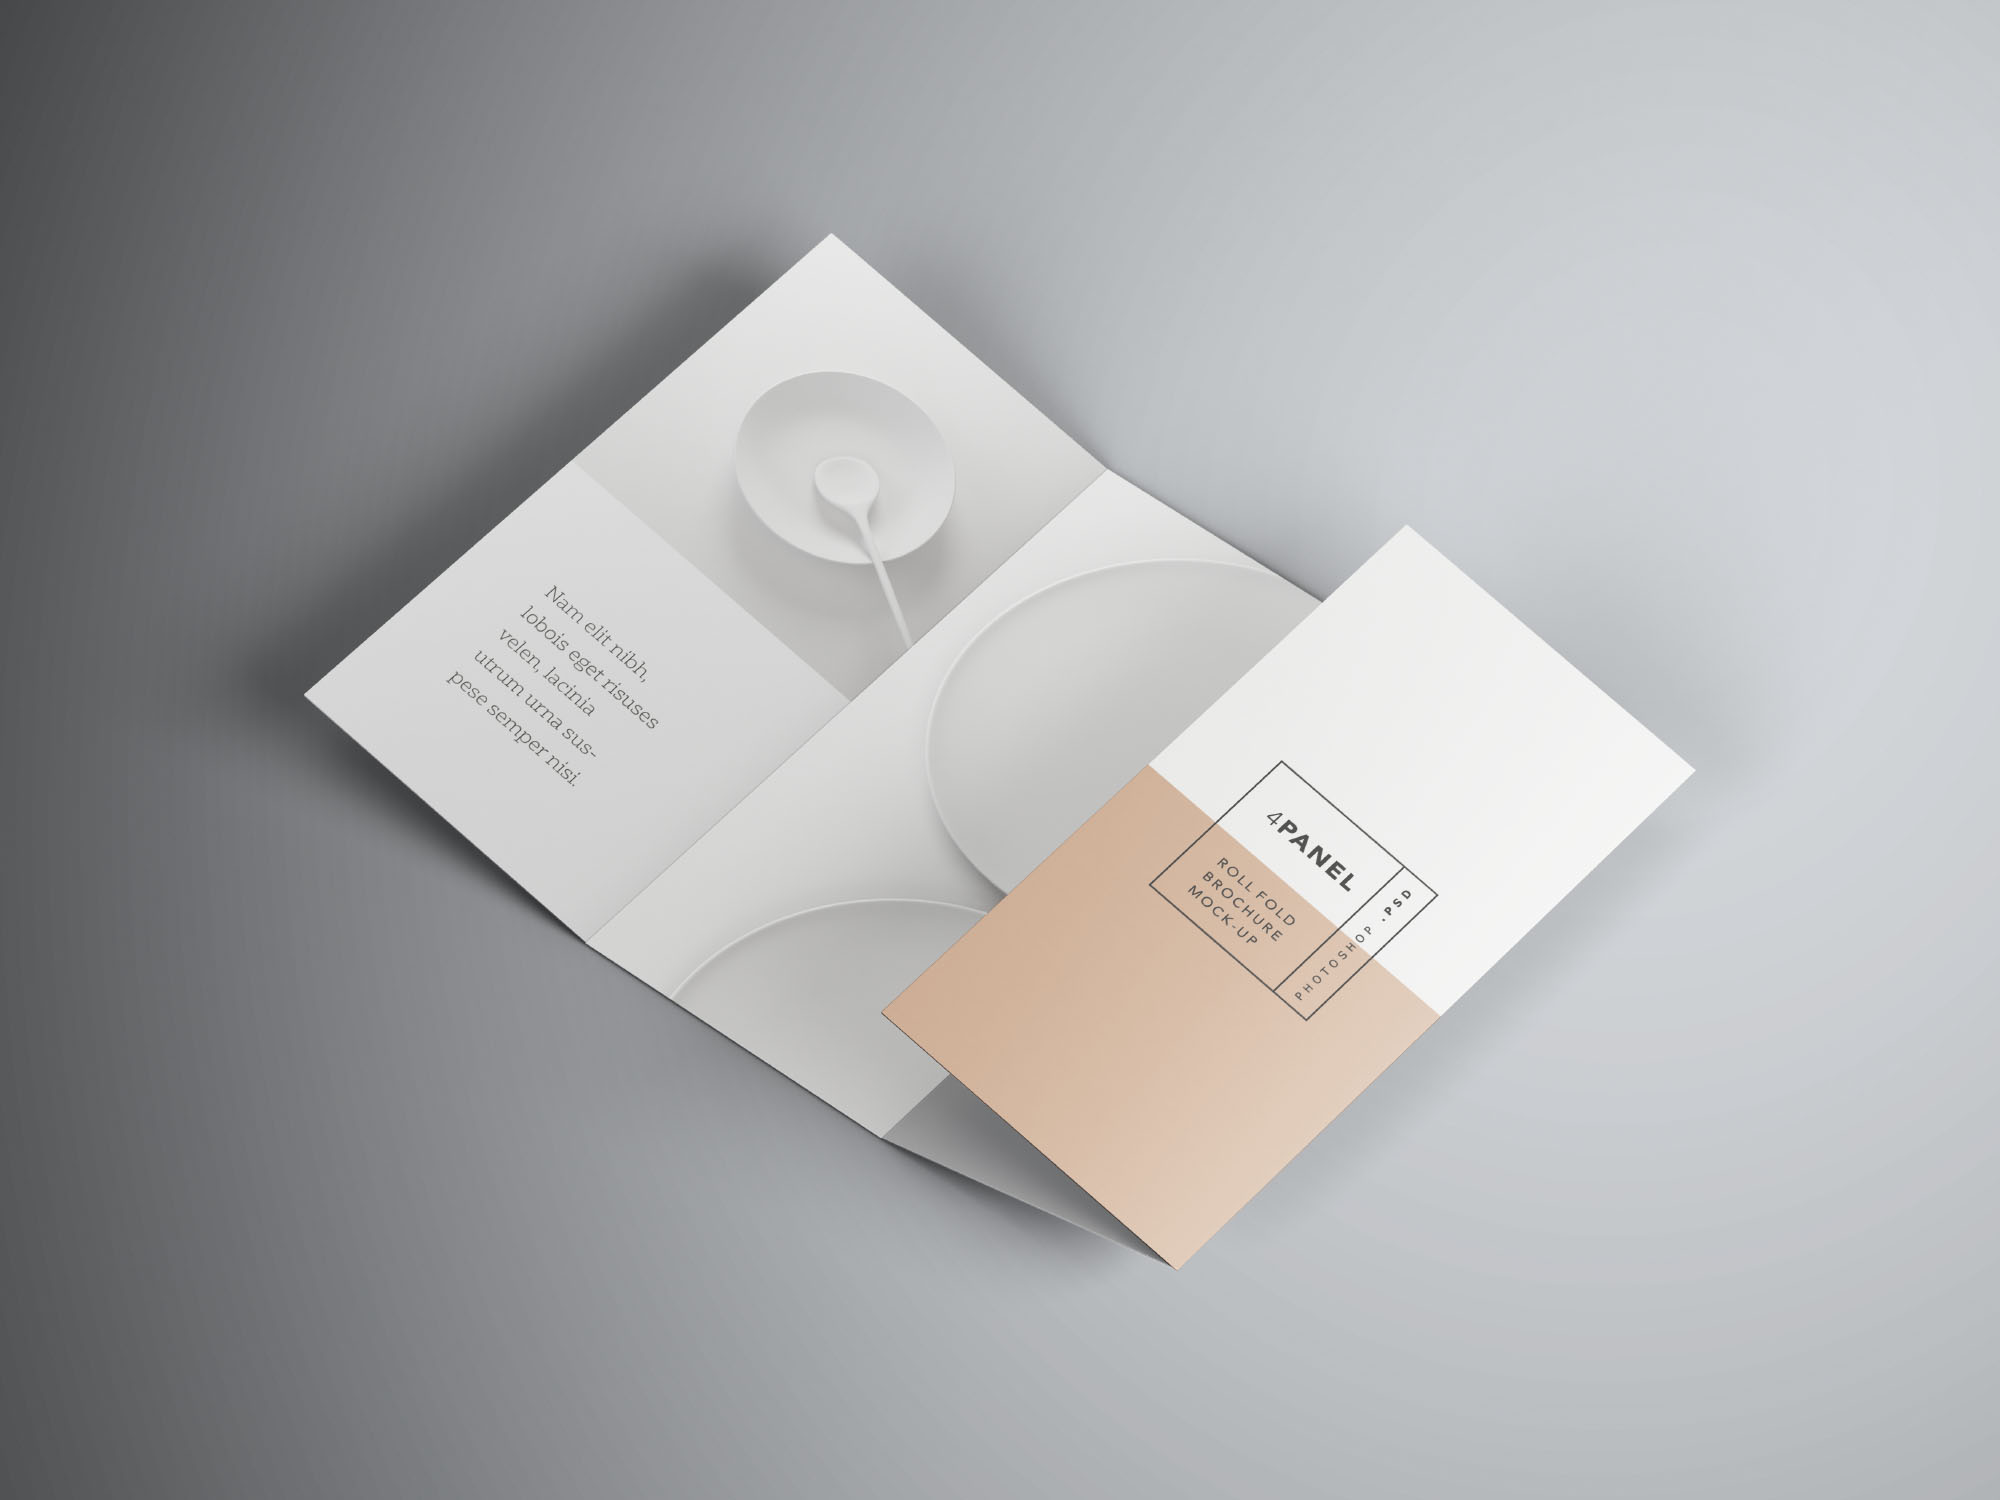 Umbrella Photoshop Mockup Free 4 Panel Roll Fold Brochure Mockup